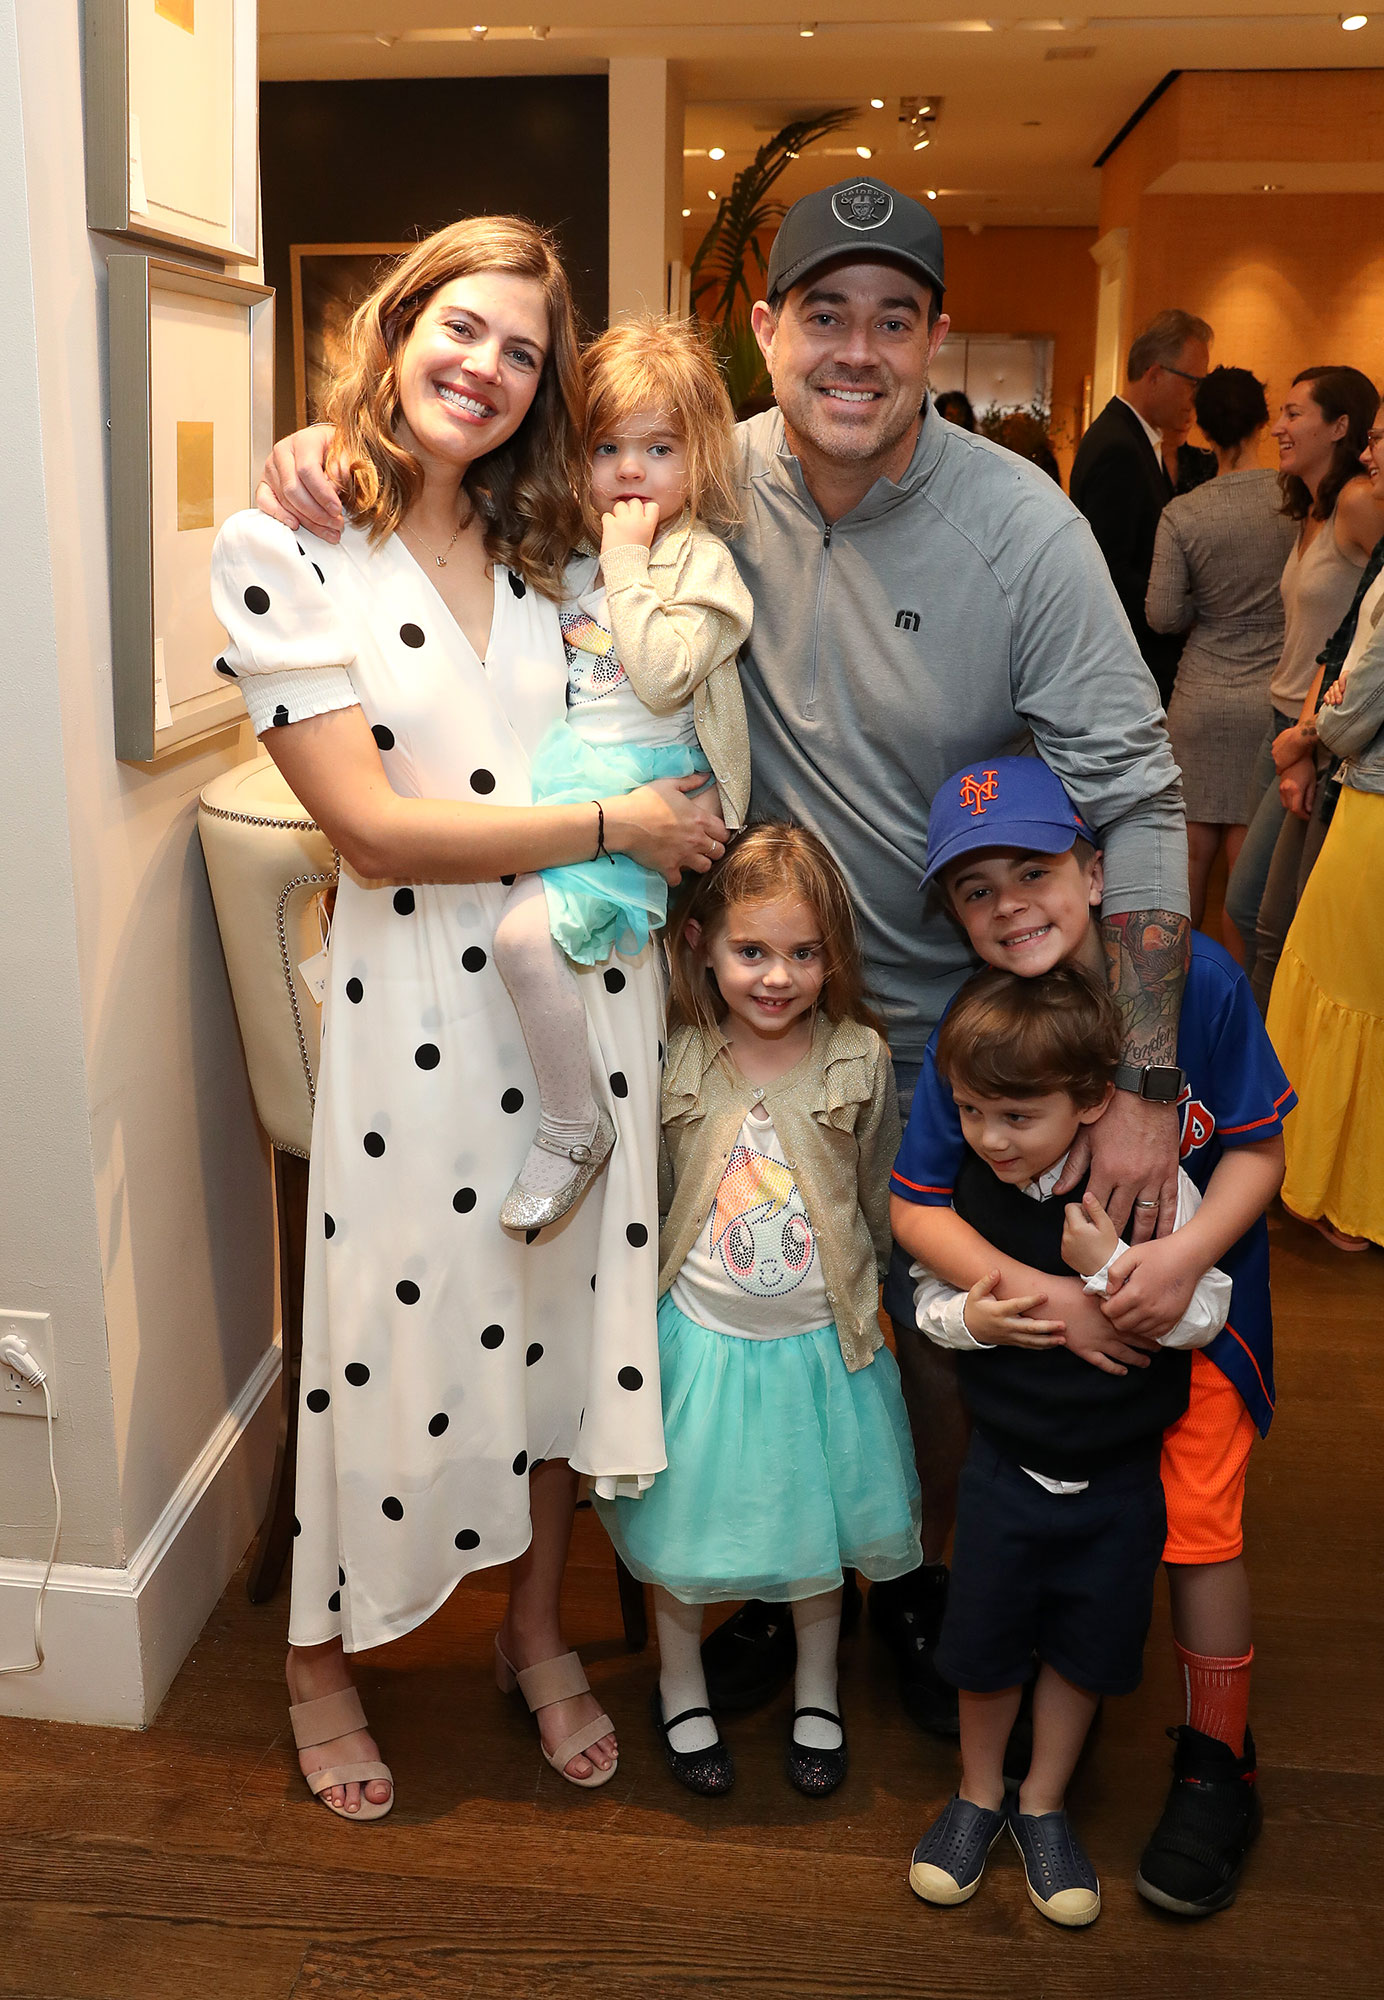 """Carson Daly Reveals He Is 'Scared of Loving' His Three Kids Too Much - Siri Daly (L) and Carson Daly, and family, attend """"Siriously Delicious"""" by Siri Daly book launch event at Williams Sonoma Columbus Circle on April 14, 2018 in New York City."""